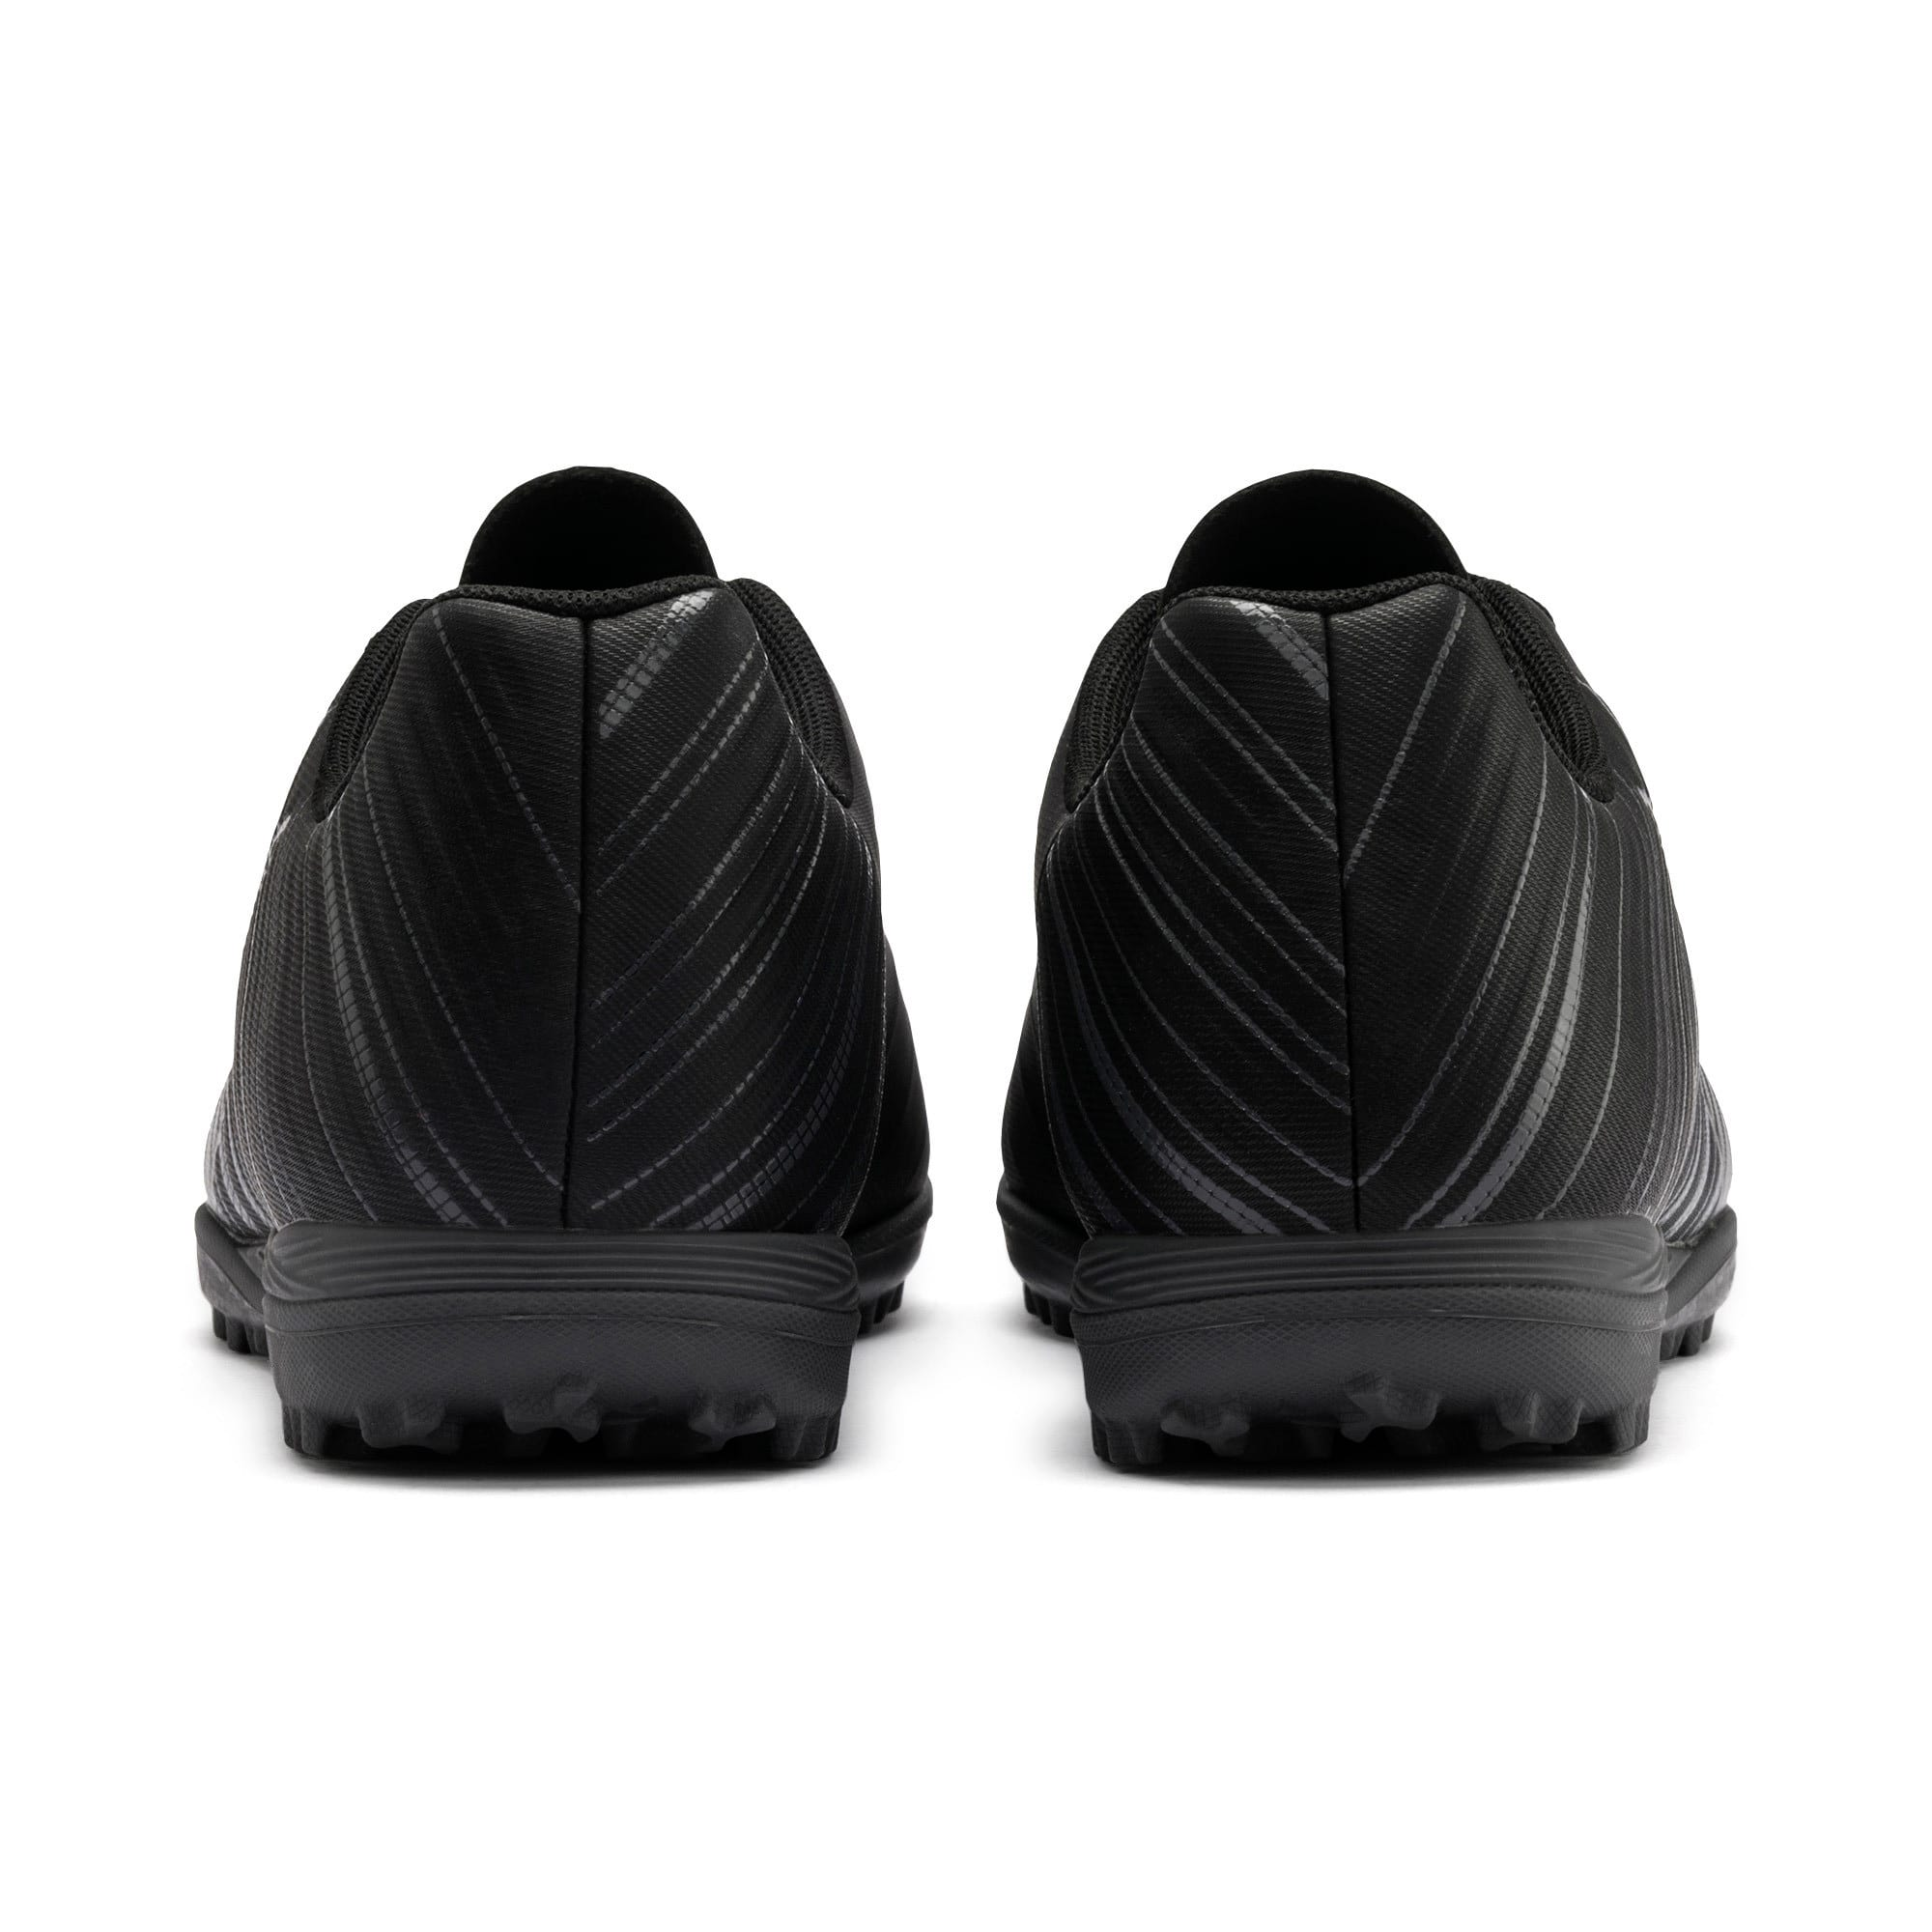 Thumbnail 4 of PUMA ONE 5.4 TT Men's Football Boots, Black-Black-Puma Aged Silver, medium